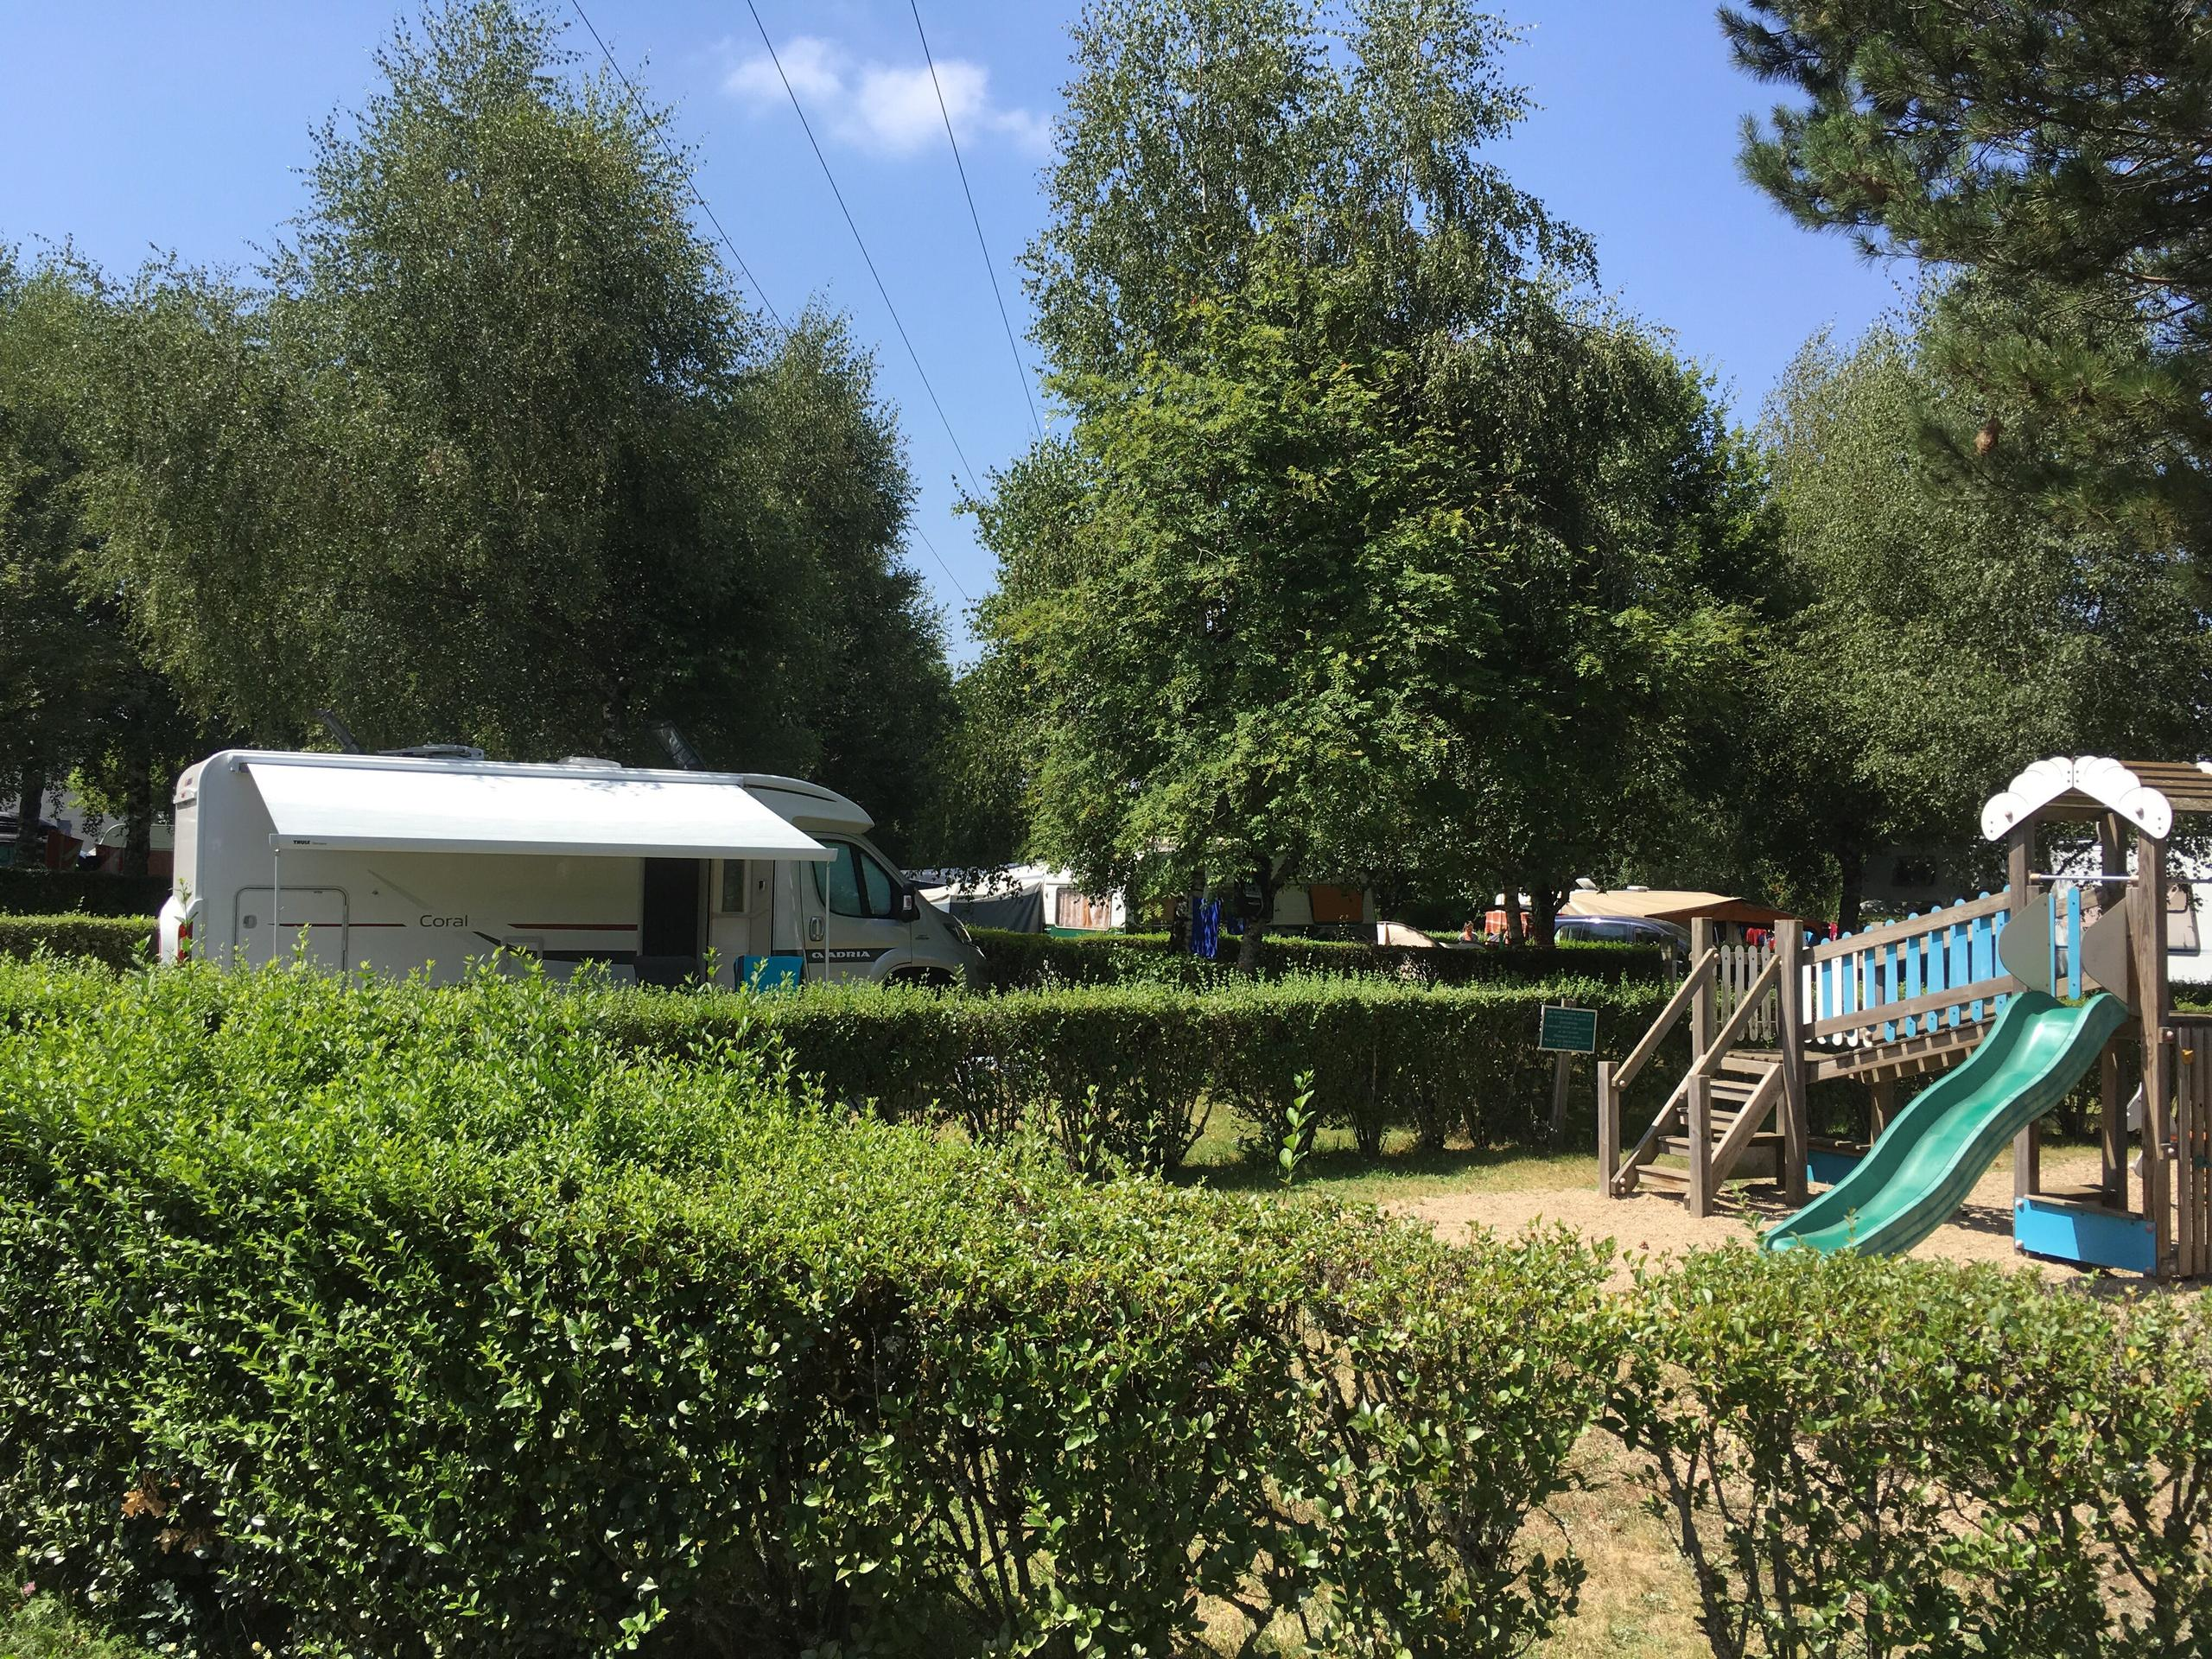 Camping St. Gervais